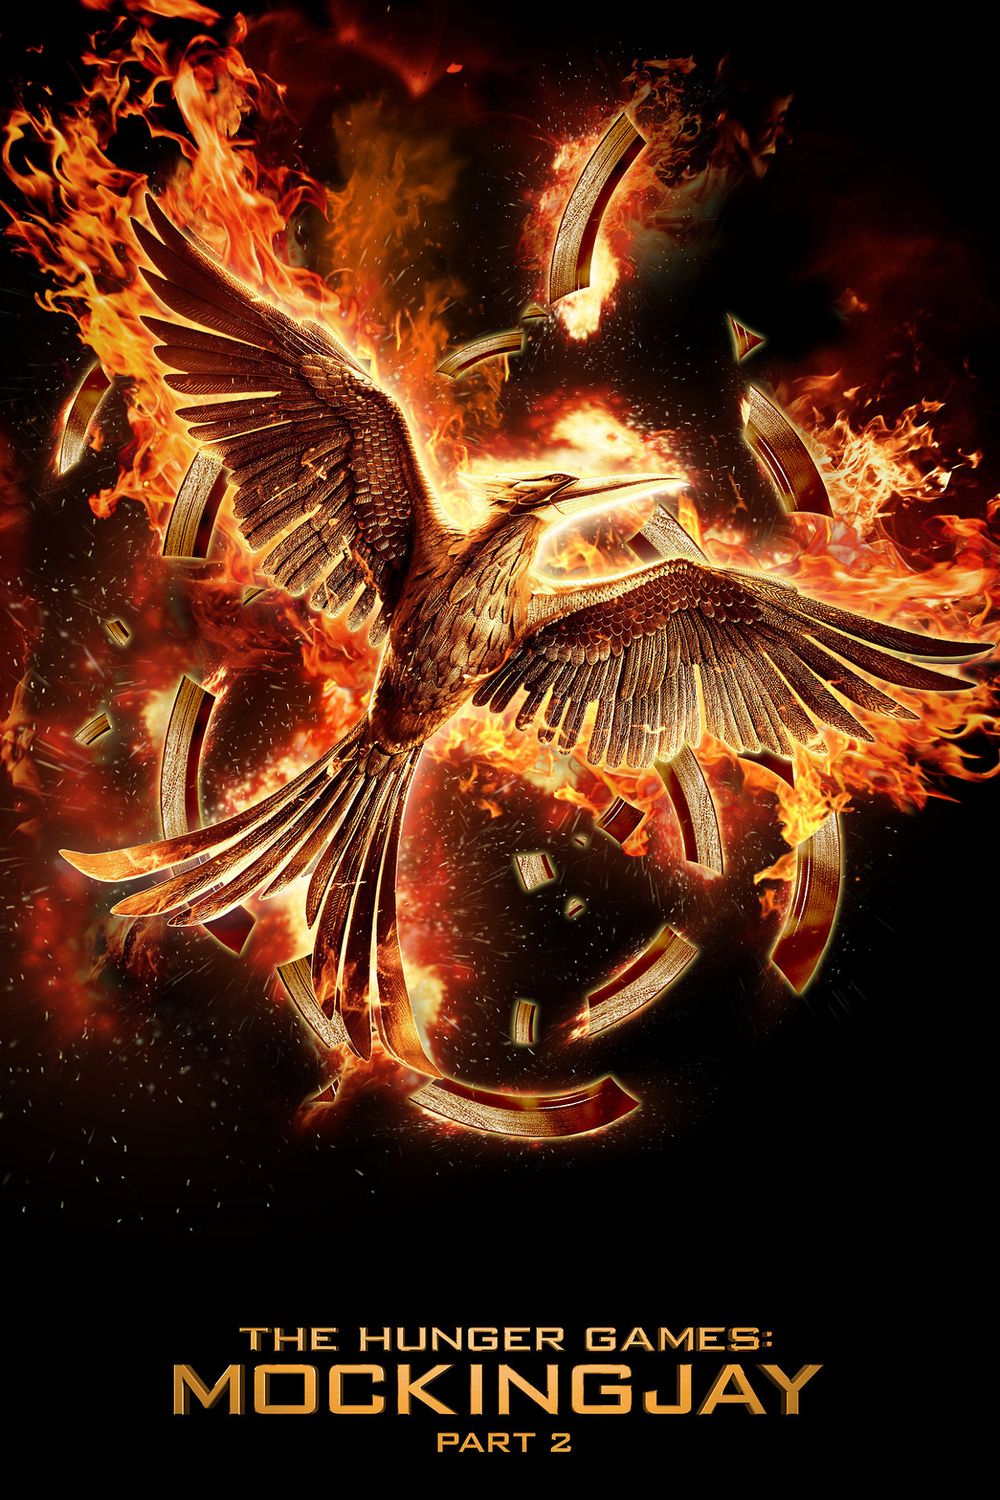 The Hunger Games: Mockingjay Part 1,' 'Part 2' Get Release Date